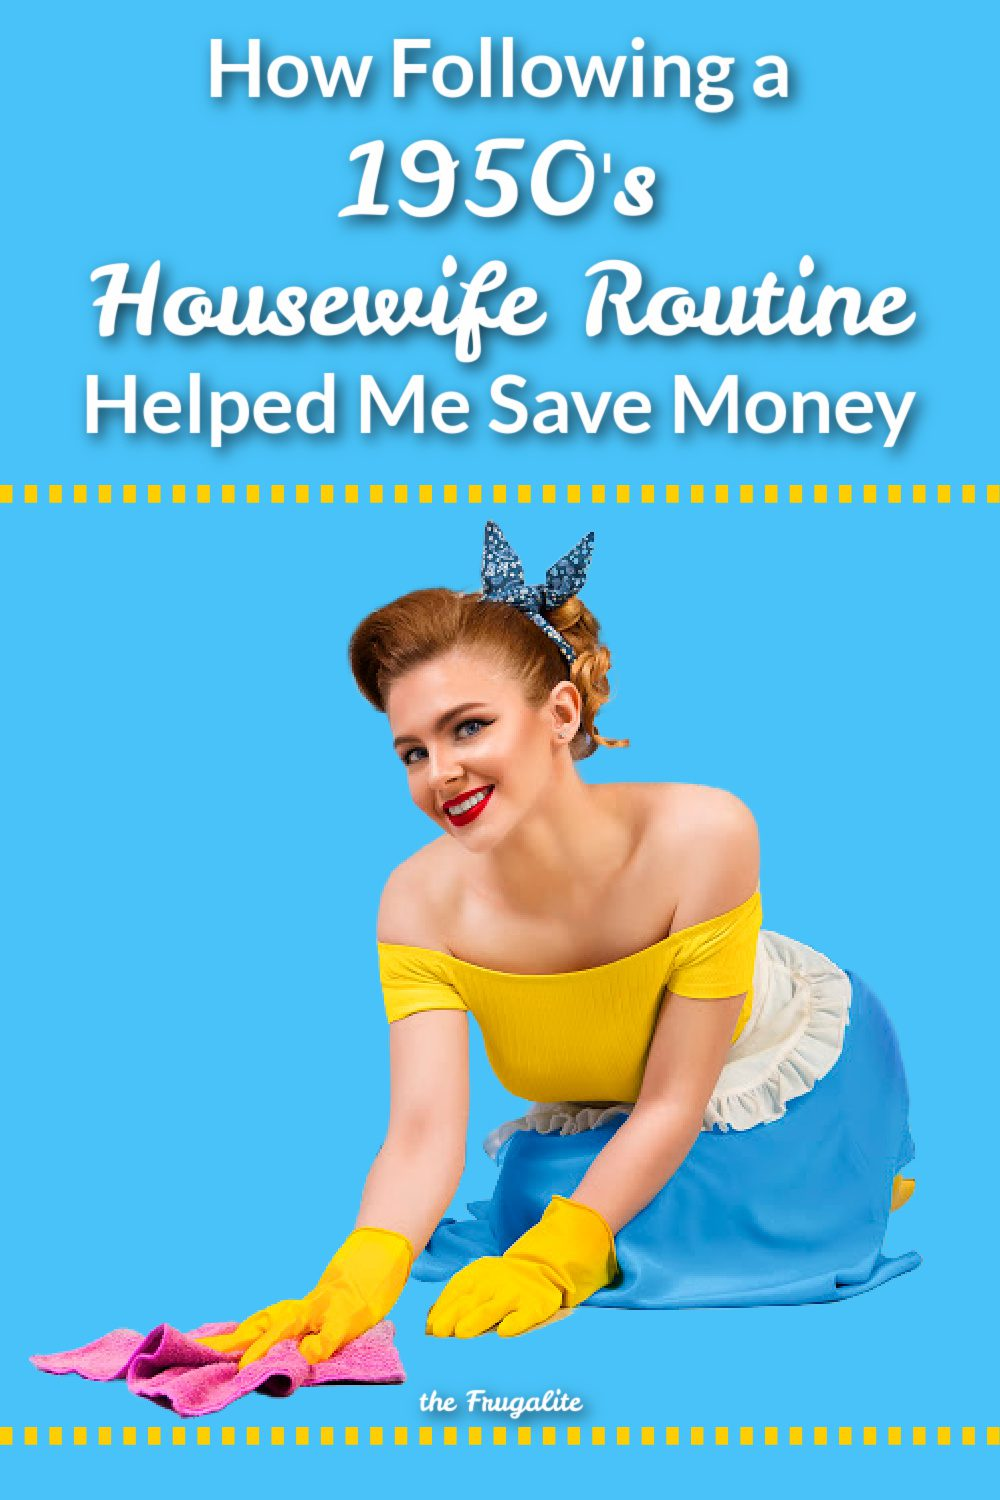 How Following a 1950\'s Housewife Routine Helped Me Save Tons of Money